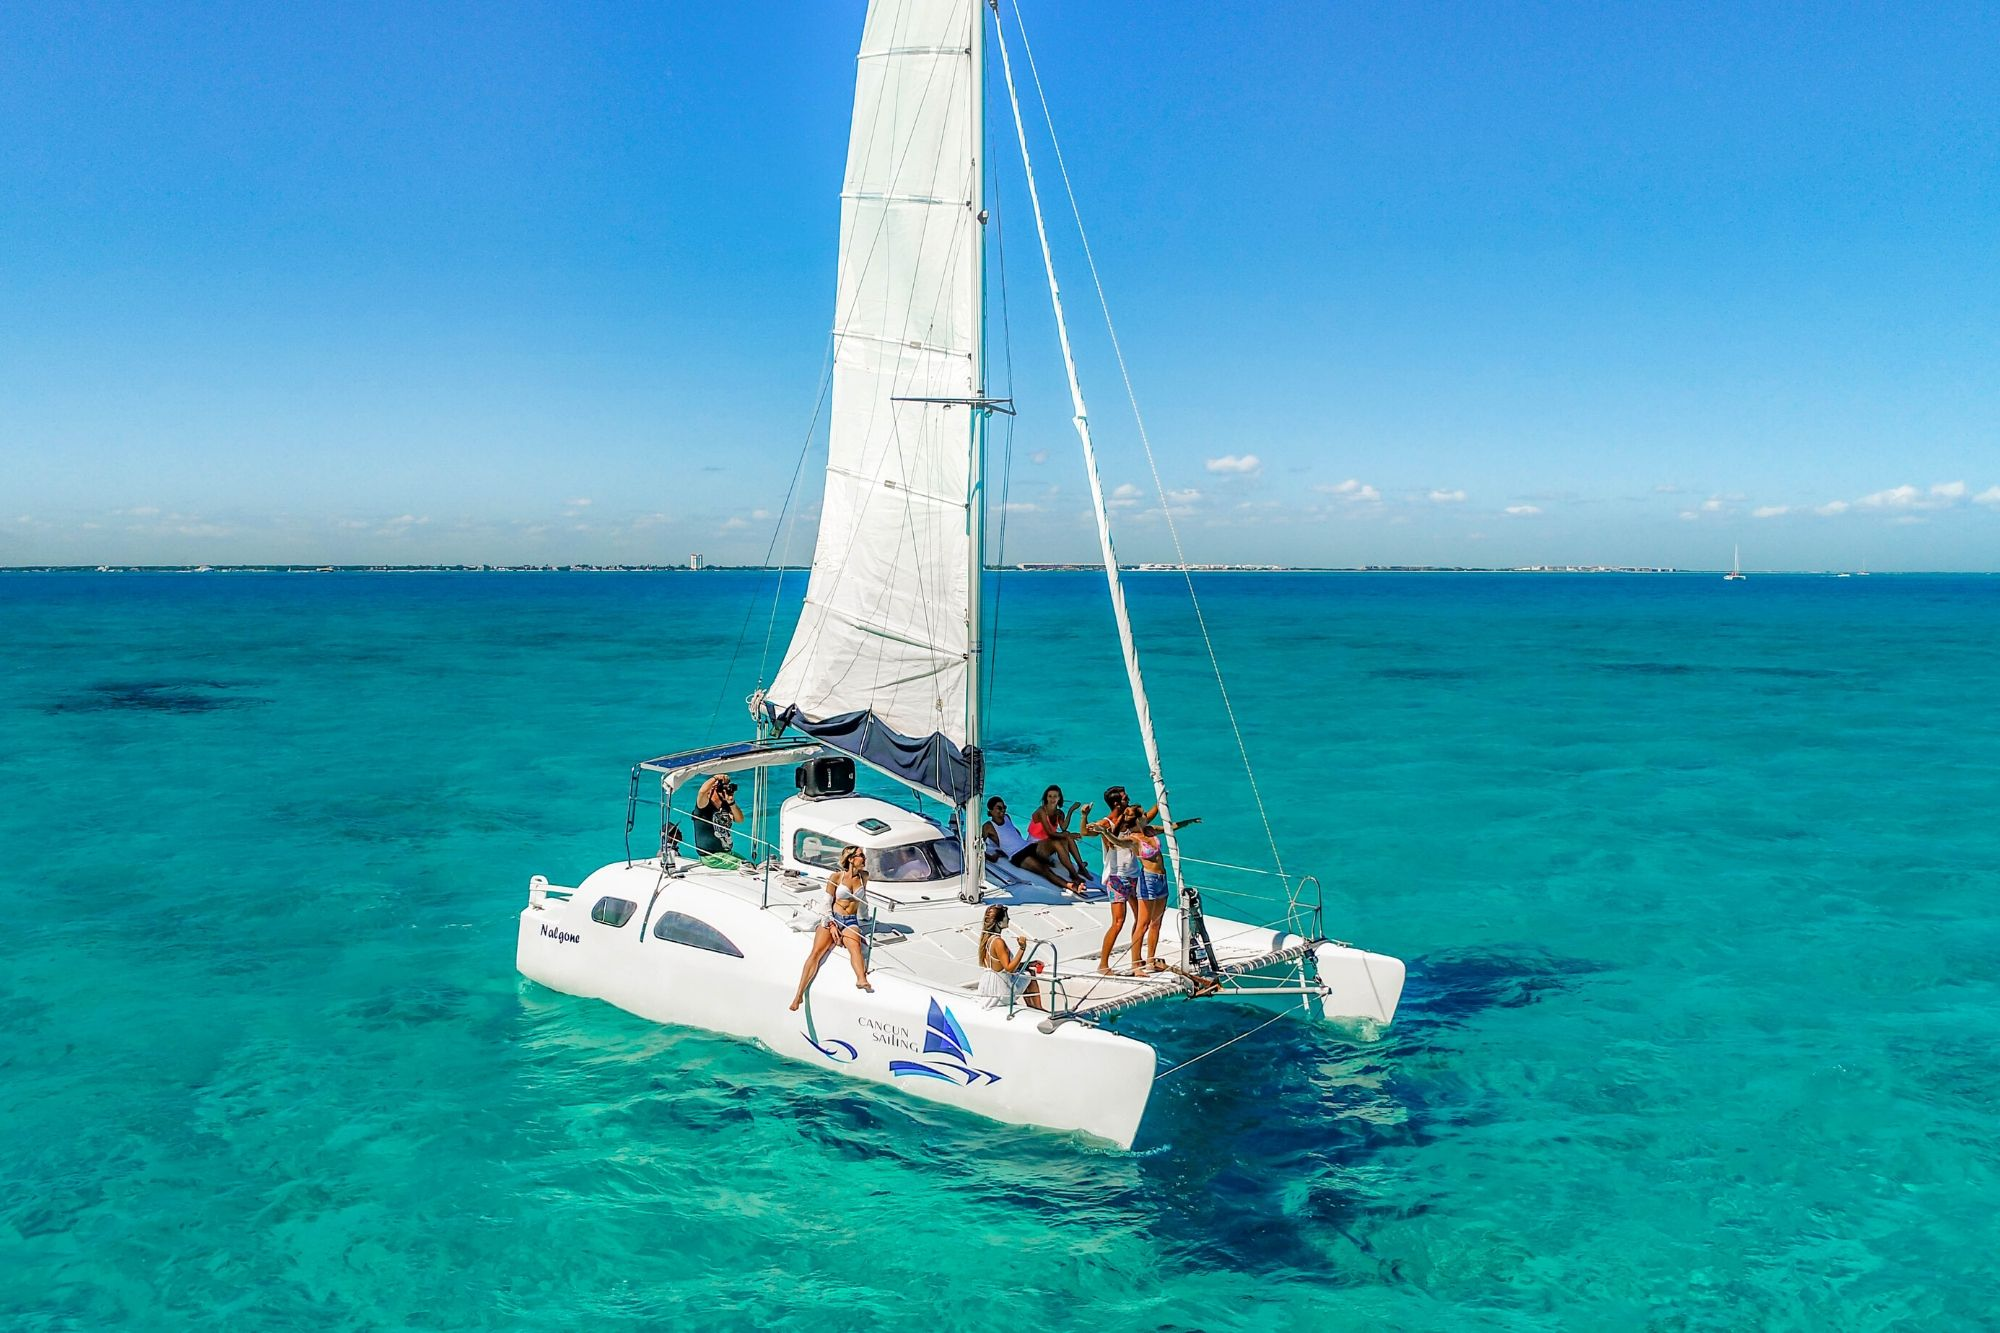 4 Nal Gone - Private tour to Isla Mujeres in catamaran - Cancun Sailing